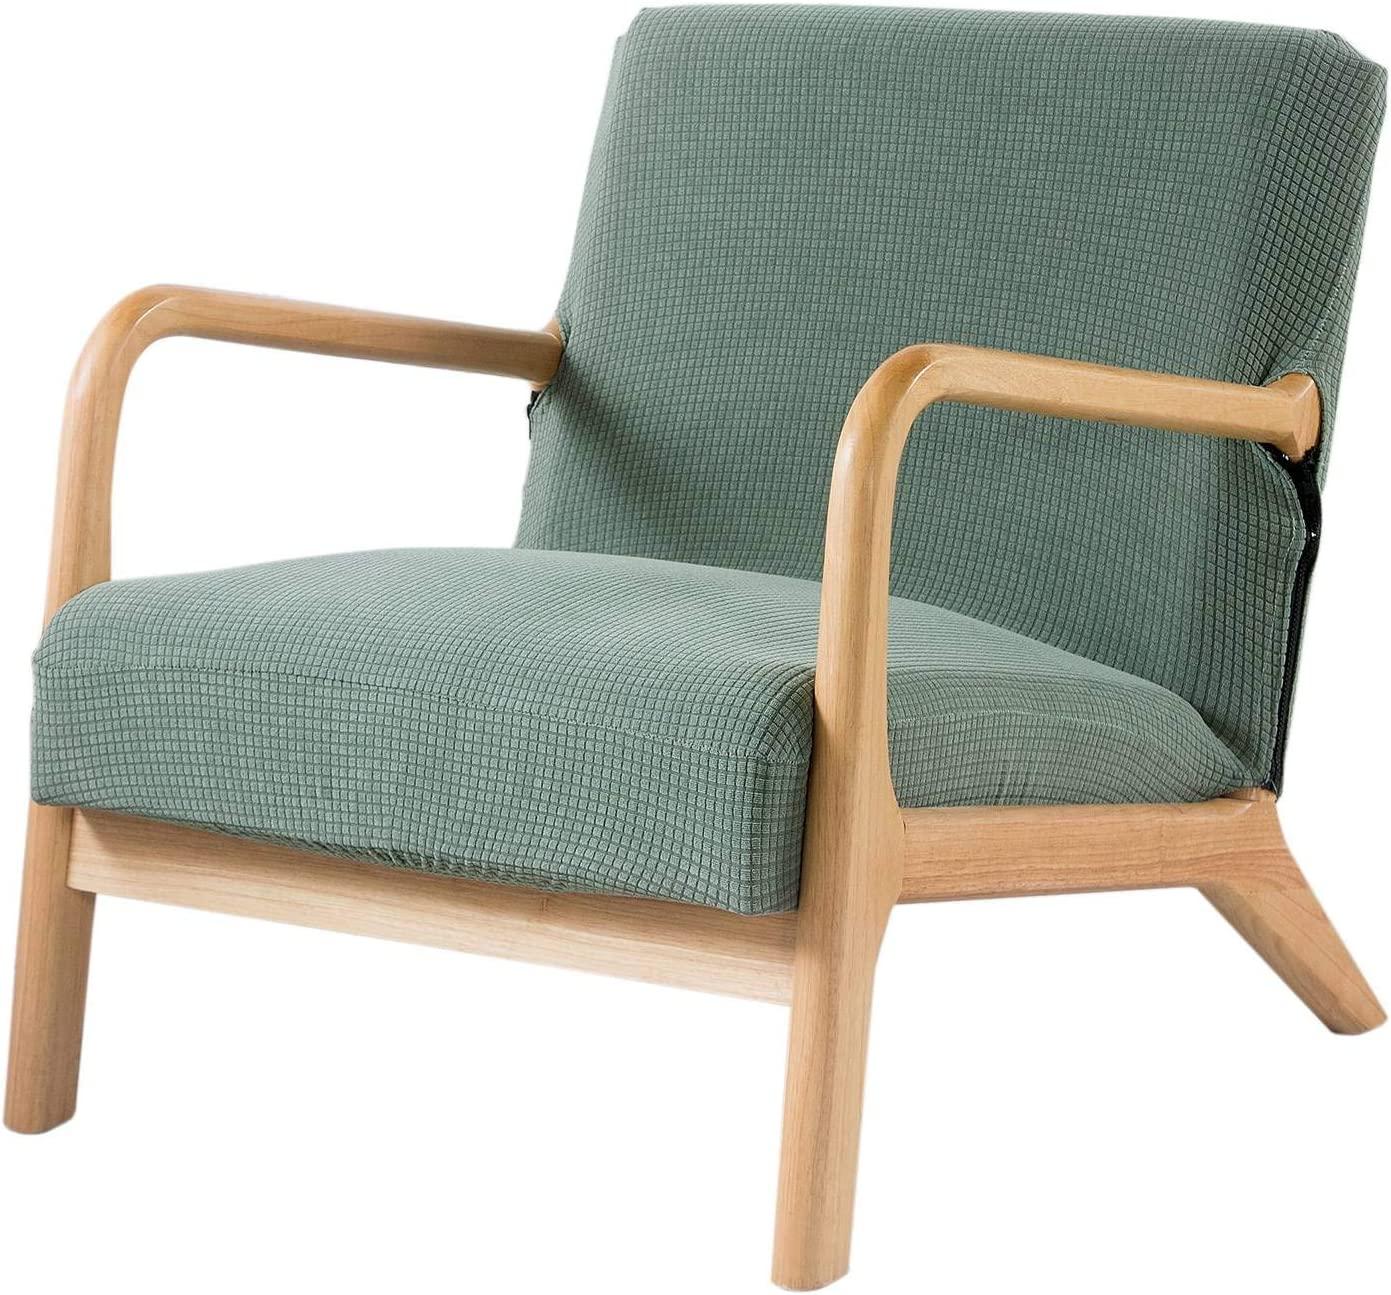 Surrui Mid Century Accent Chair Chairs Cove Wooden Arm Excellent Slipcover Award